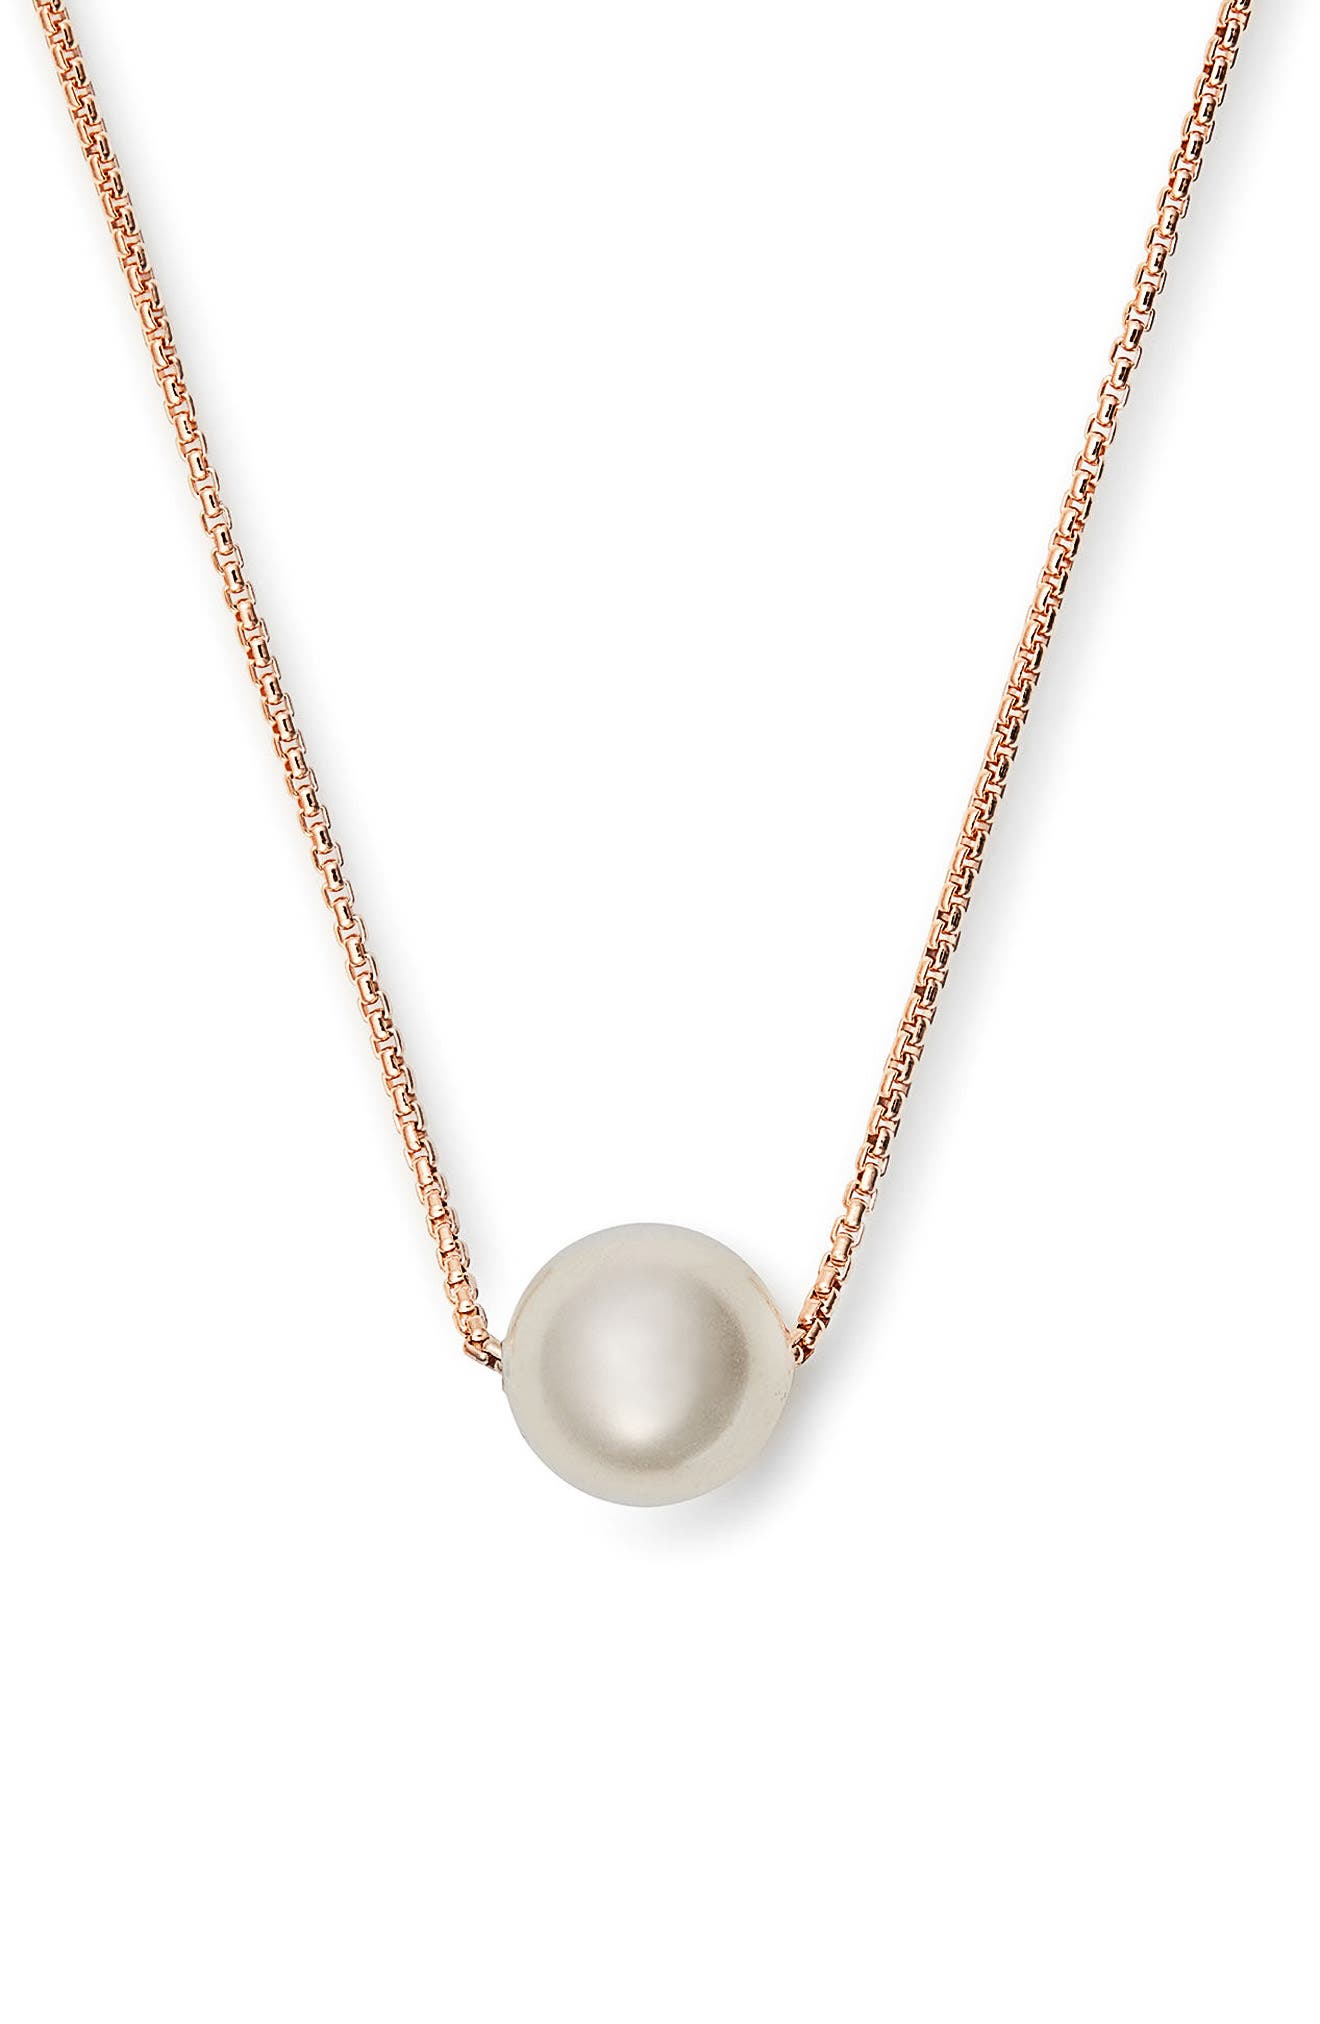 White Sea Sultry Adjustable Necklace,                             Alternate thumbnail 4, color,